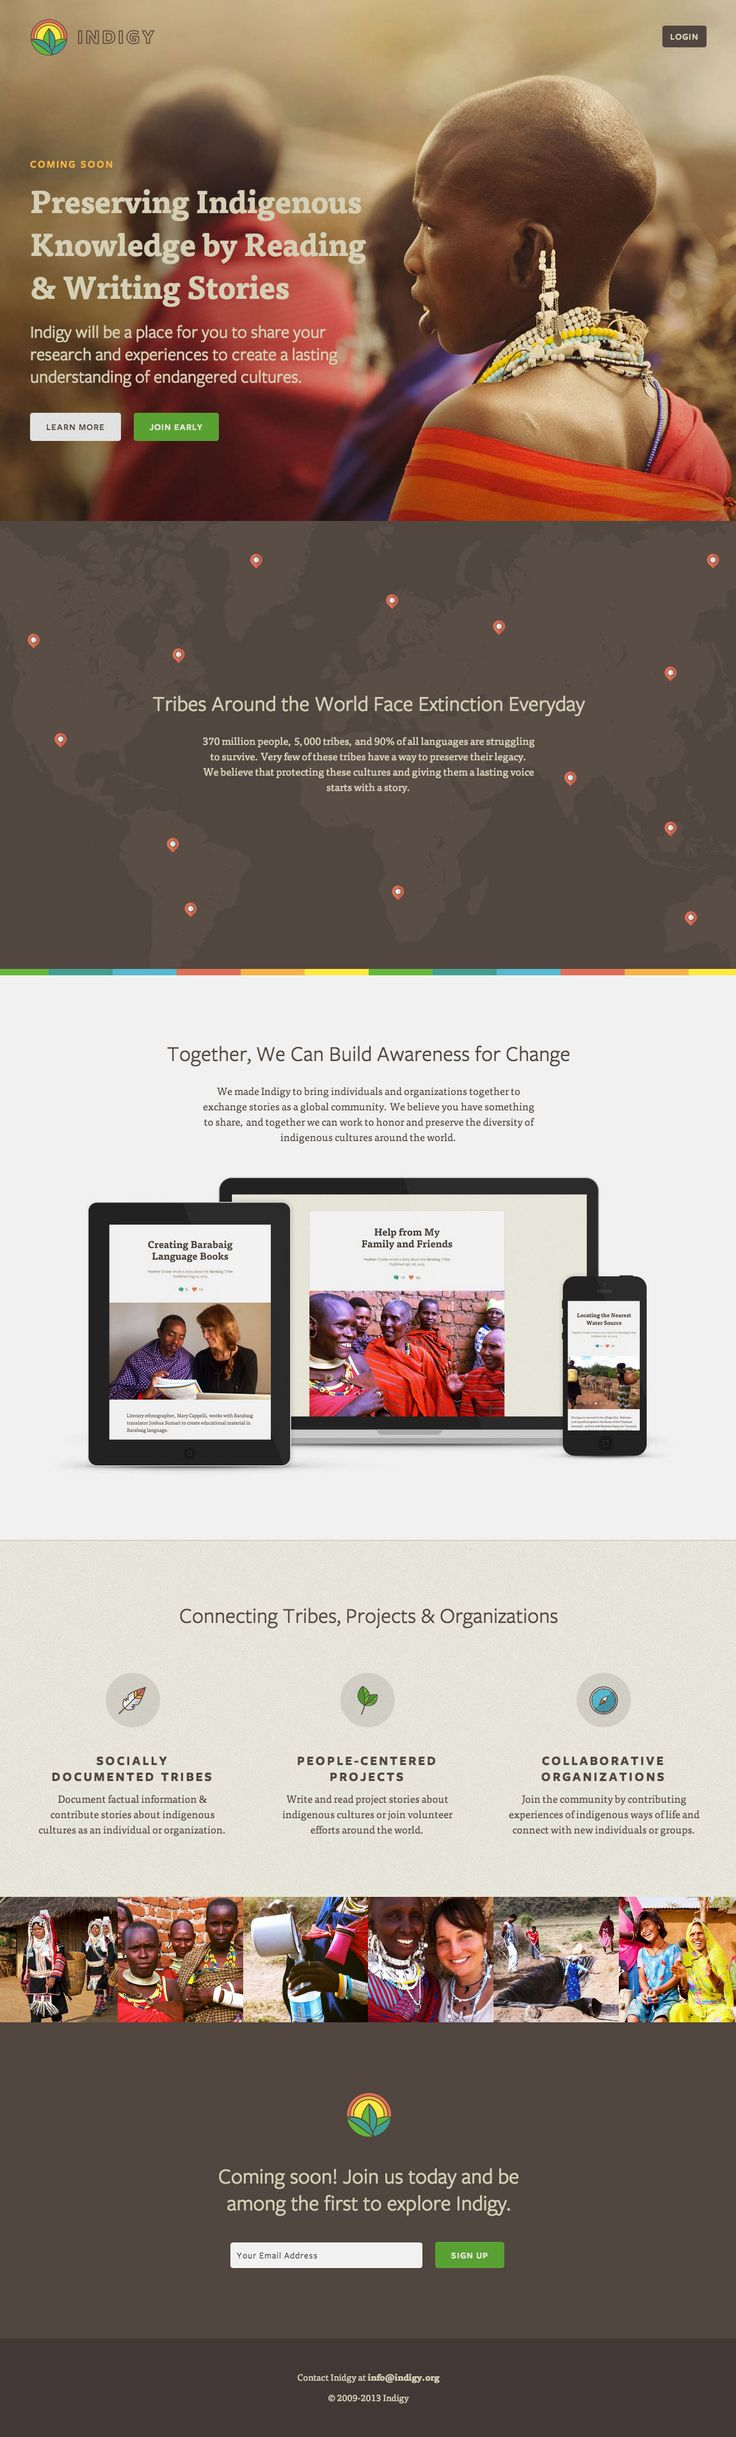 Elegant design in this responsive landing page for 'Indigy' - an upcoming portal to share your research.